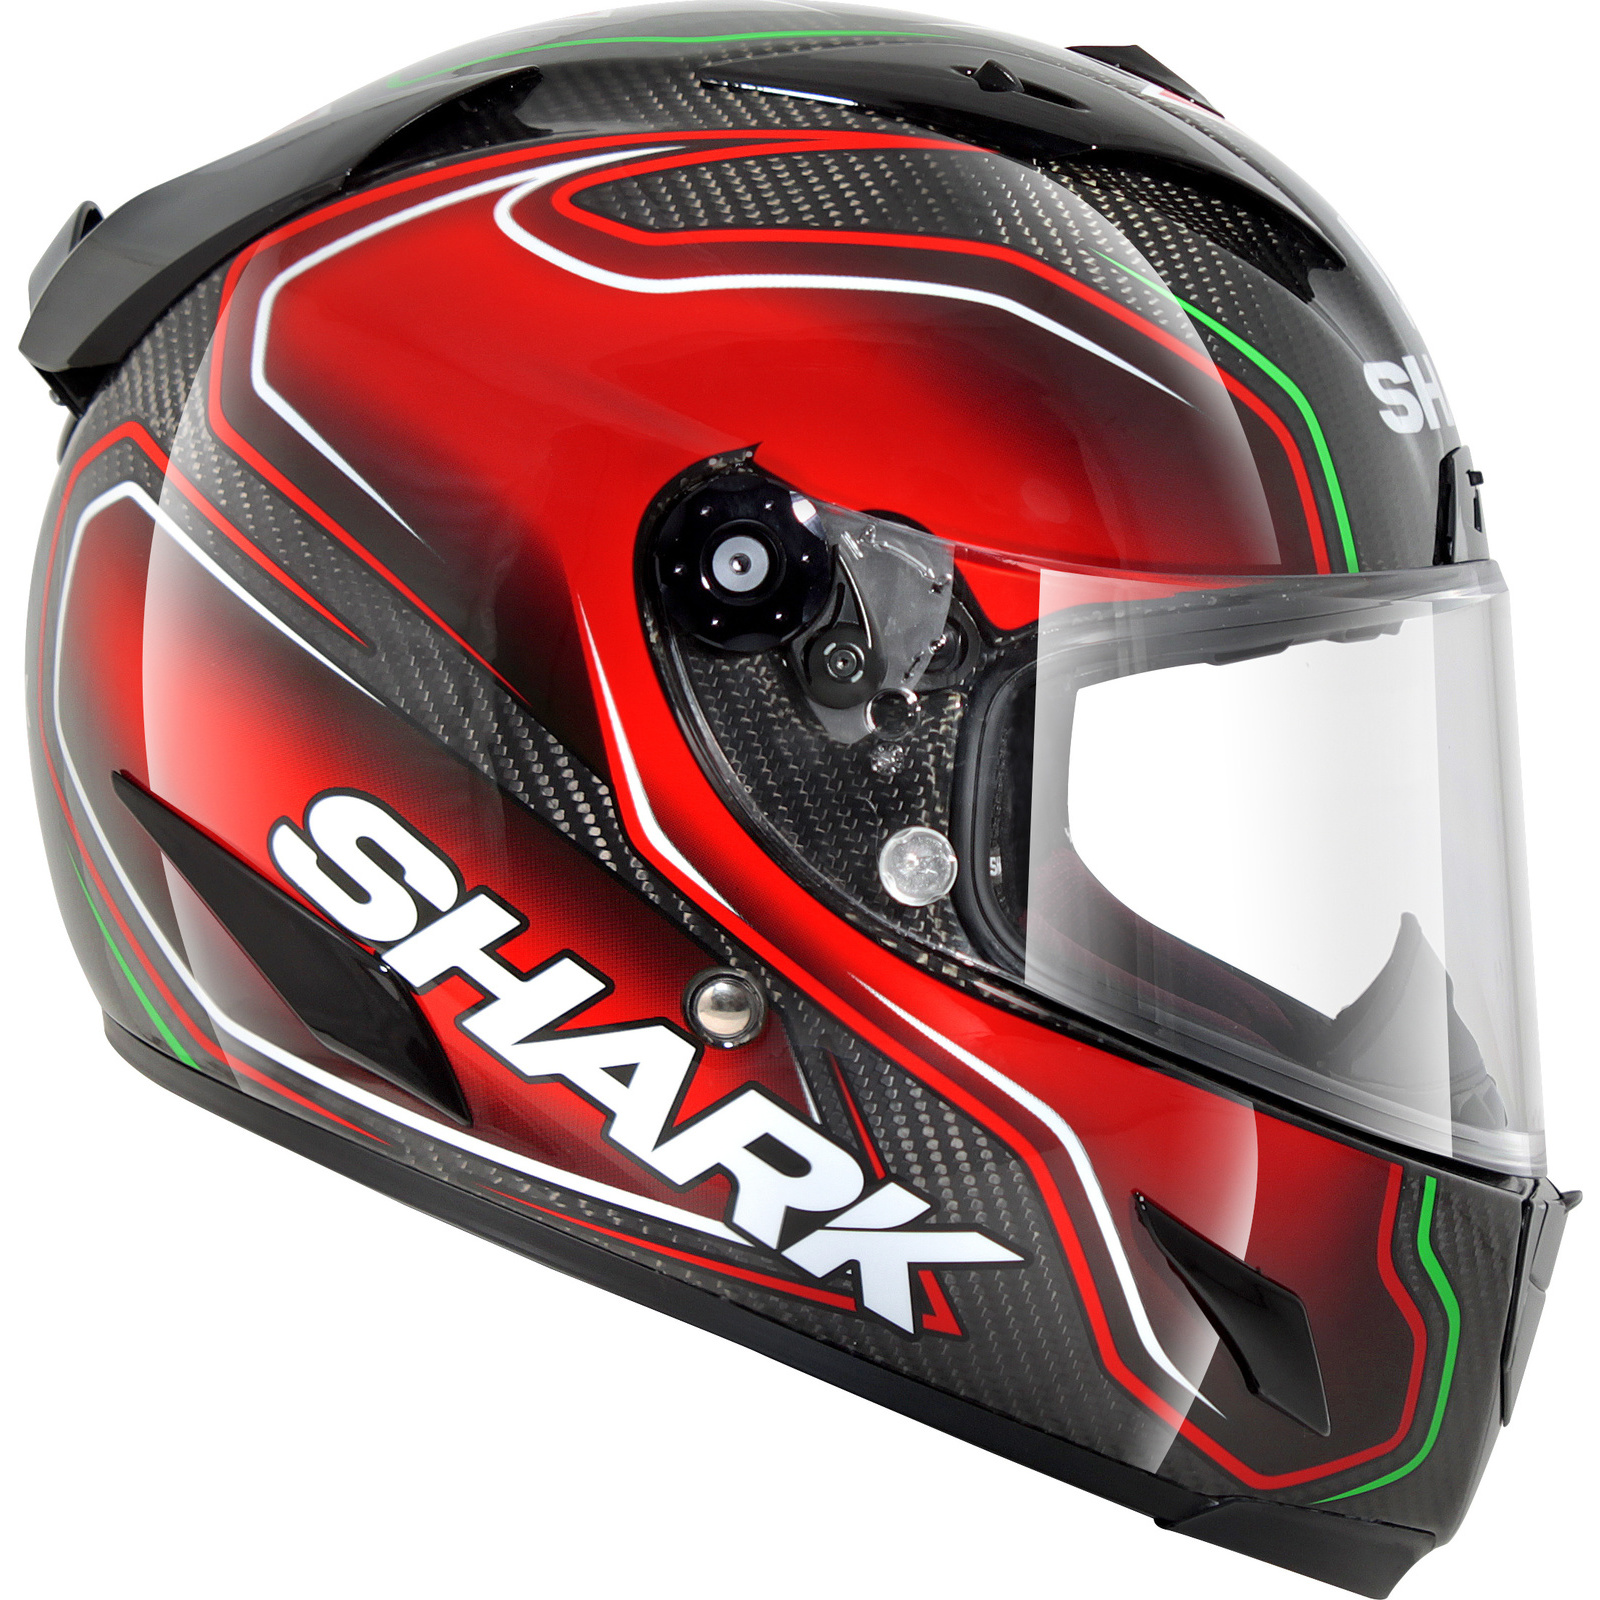 shark race r pro carbon guintoli black red motorcycle helmet drg road protection ebay. Black Bedroom Furniture Sets. Home Design Ideas